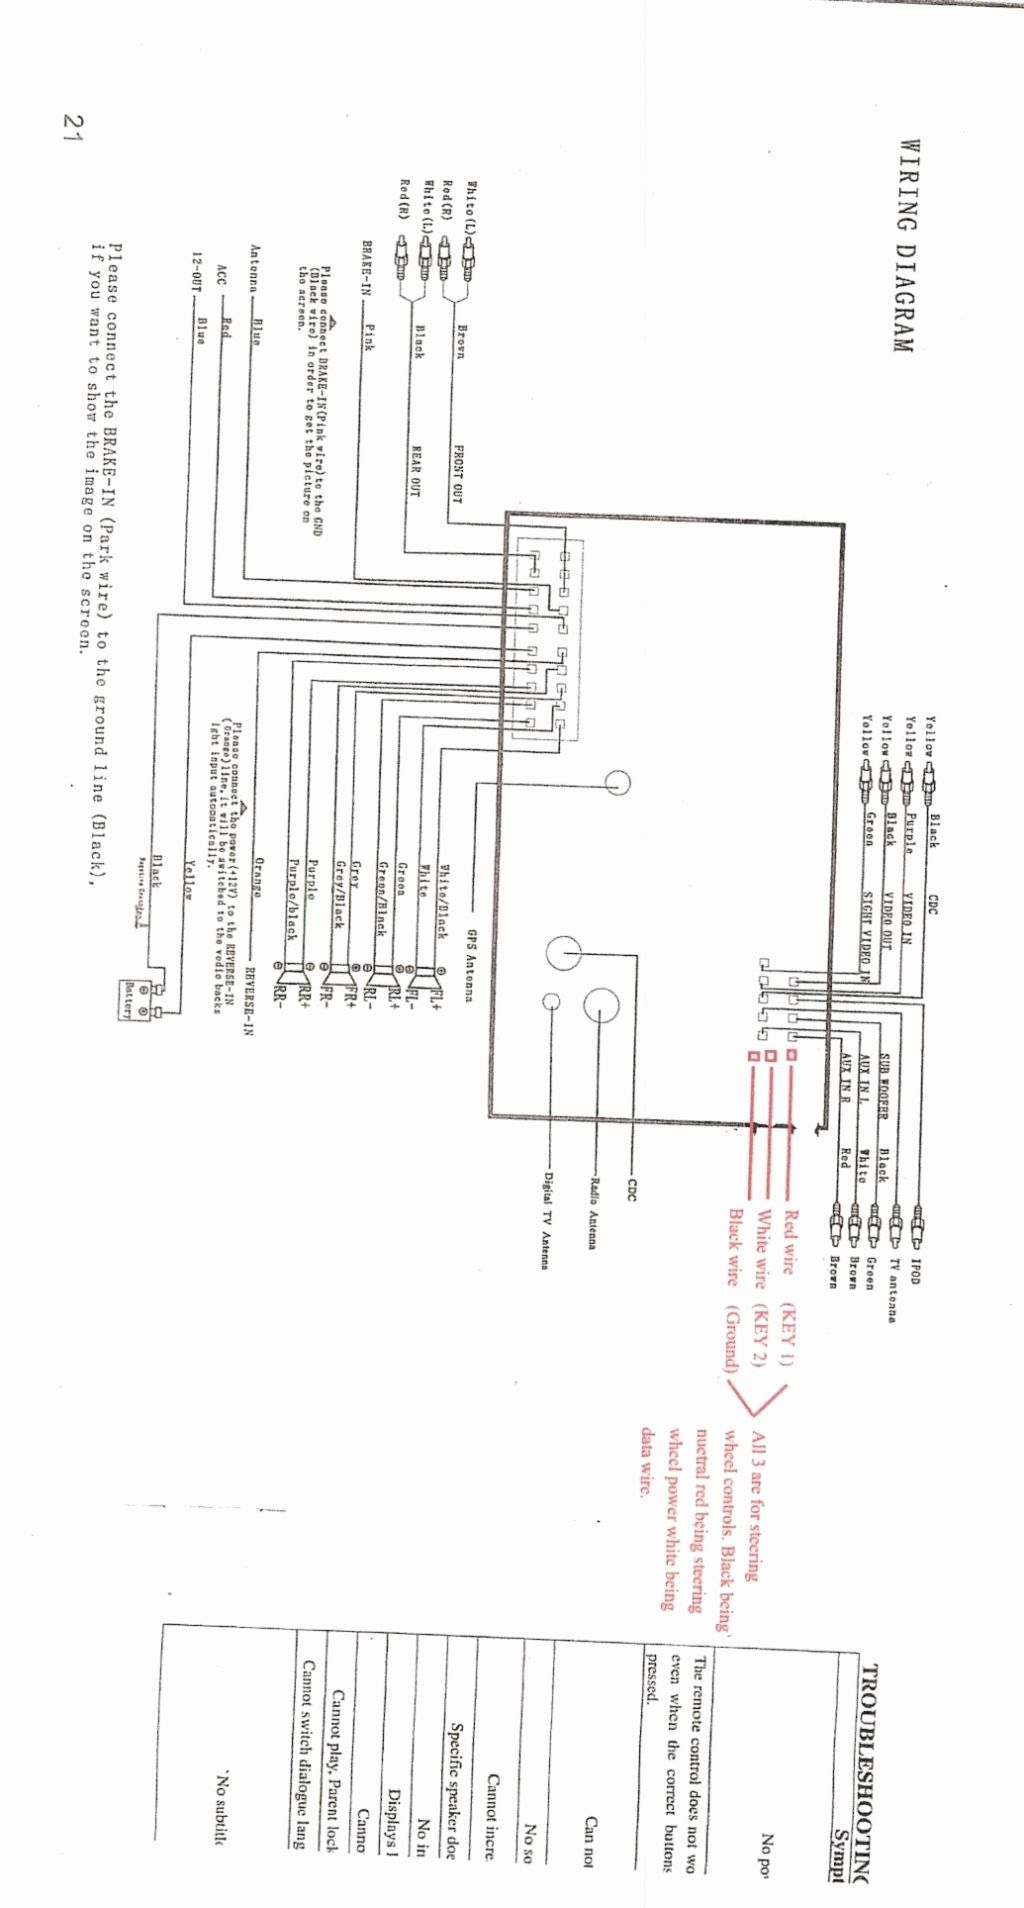 white rodgers 24a01g 3 wiring diagram Download-Axxess Steering Wheel Control Interface Wiring Diagram Download White rodgers 24a01g 3 wiring diagram 12-s